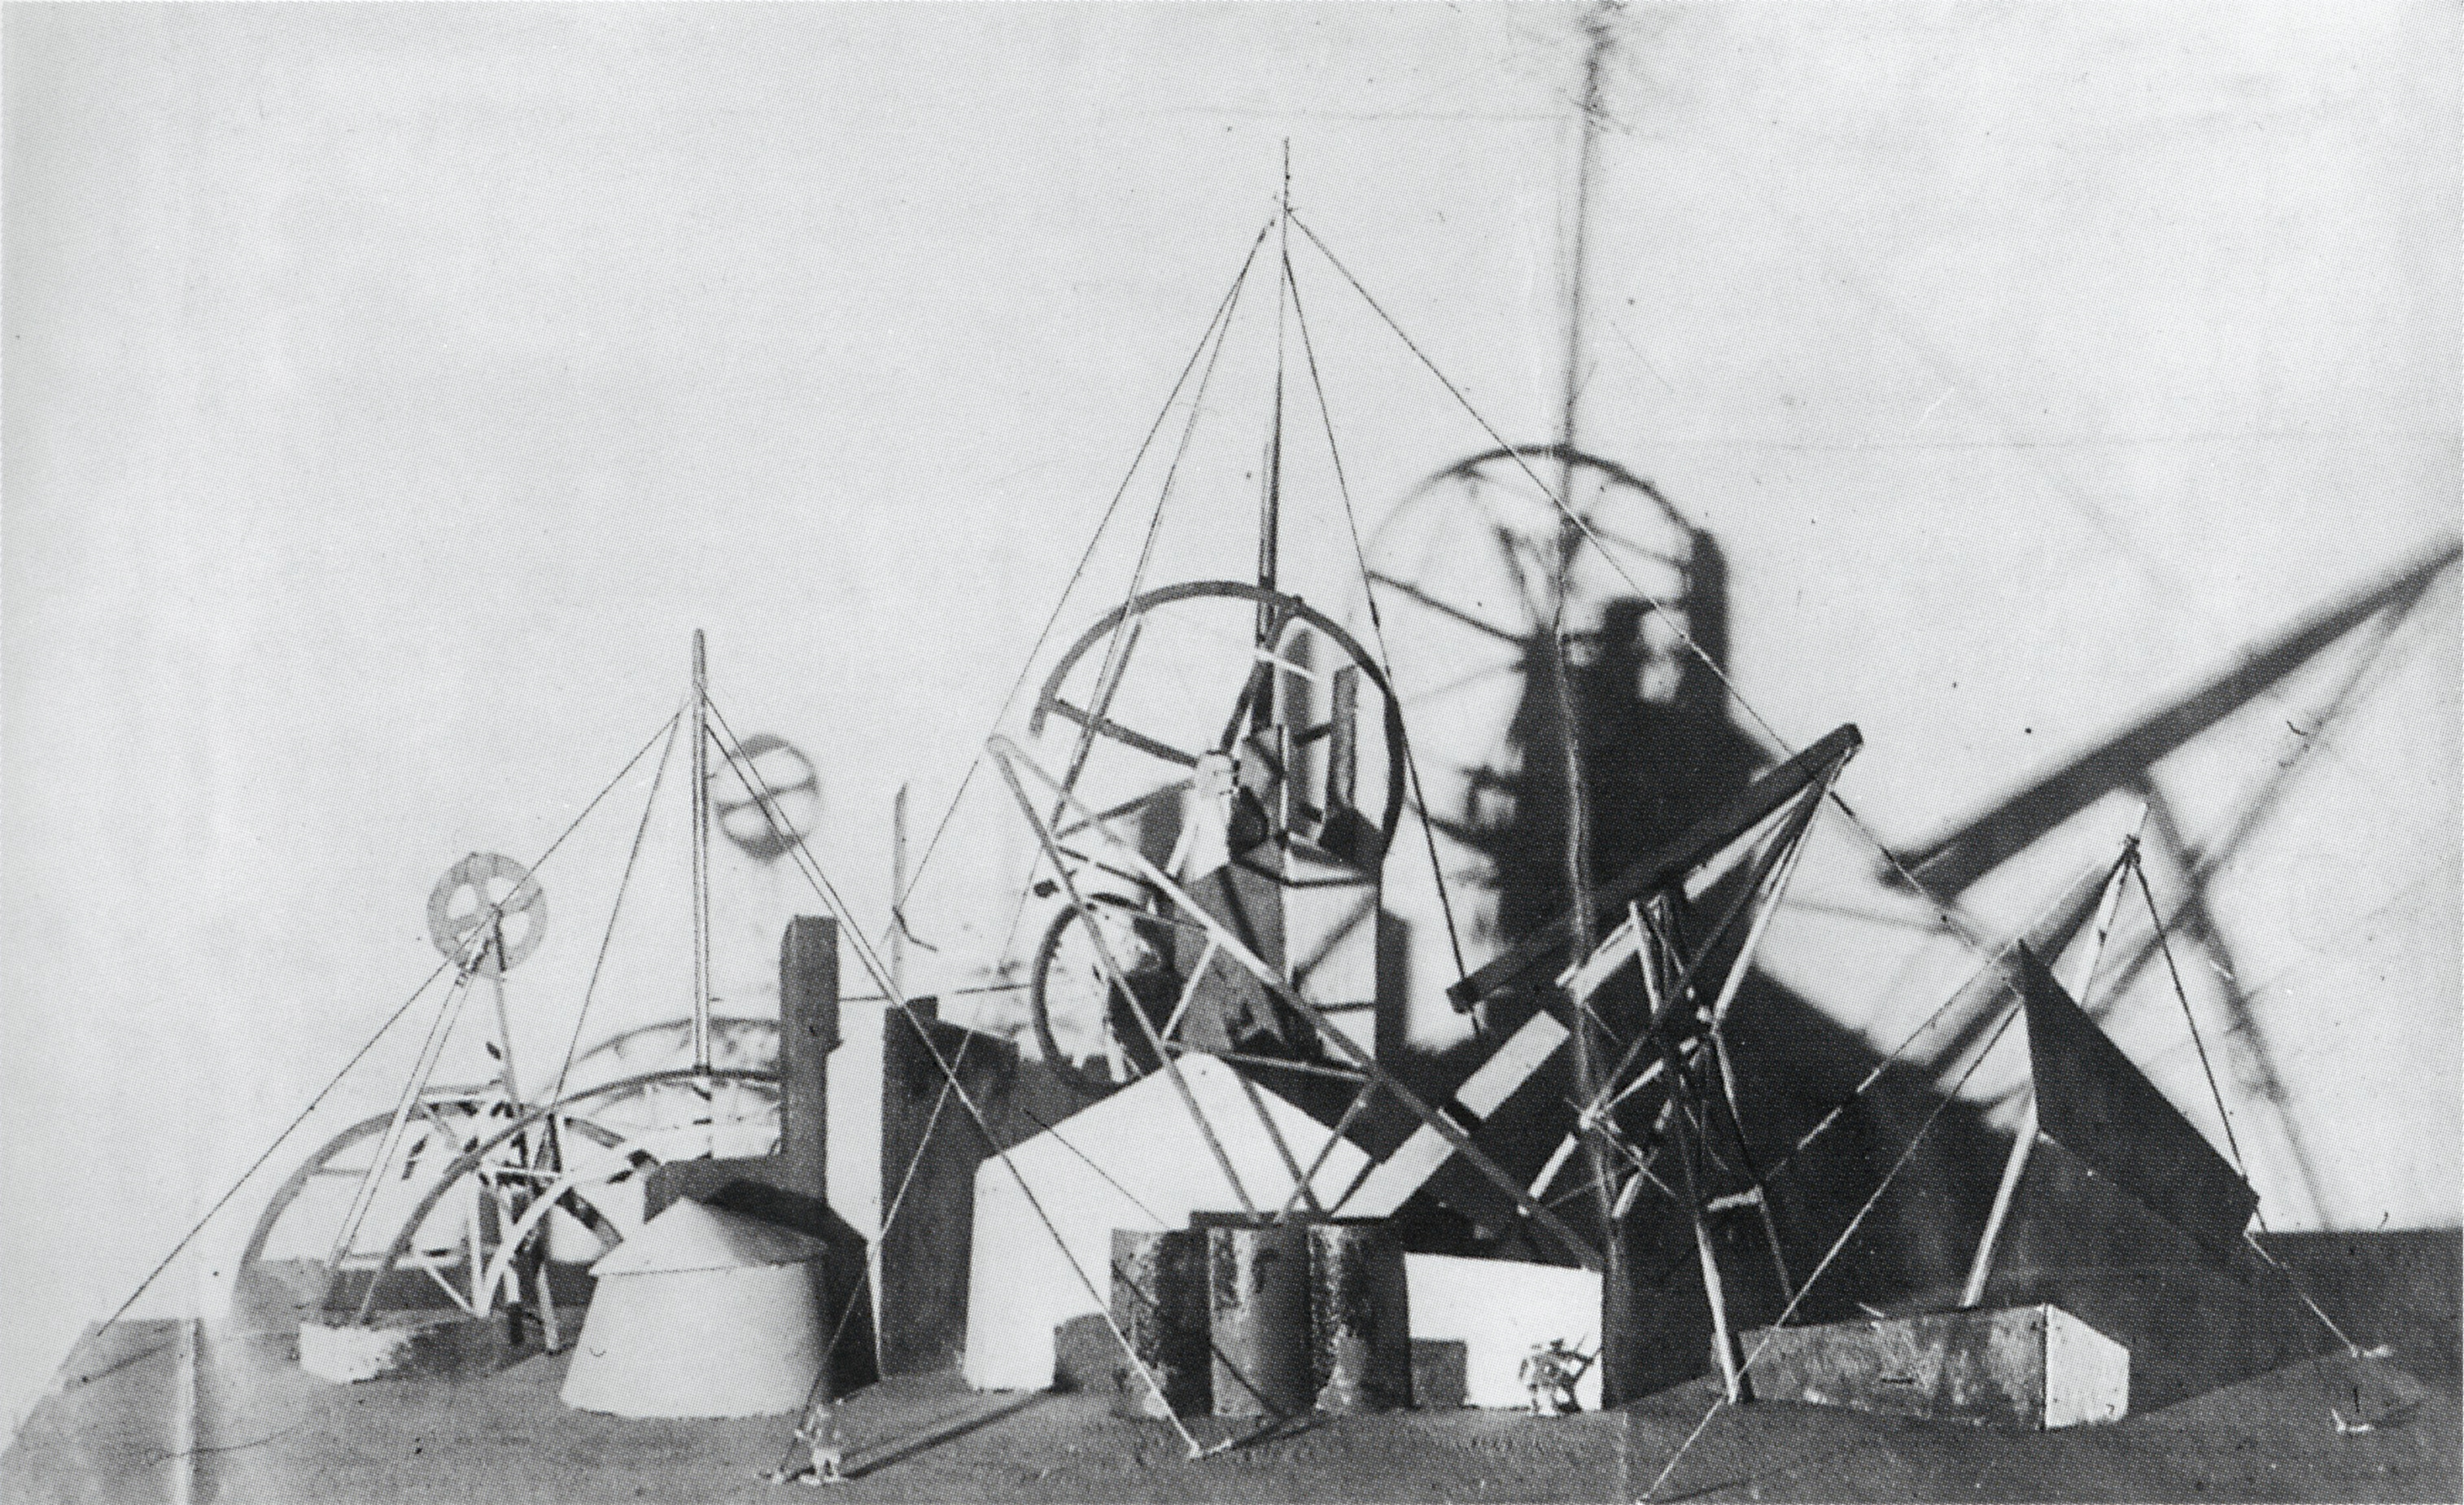 Vesnin and Popova, Stage for a mass demonstration for the Comintern